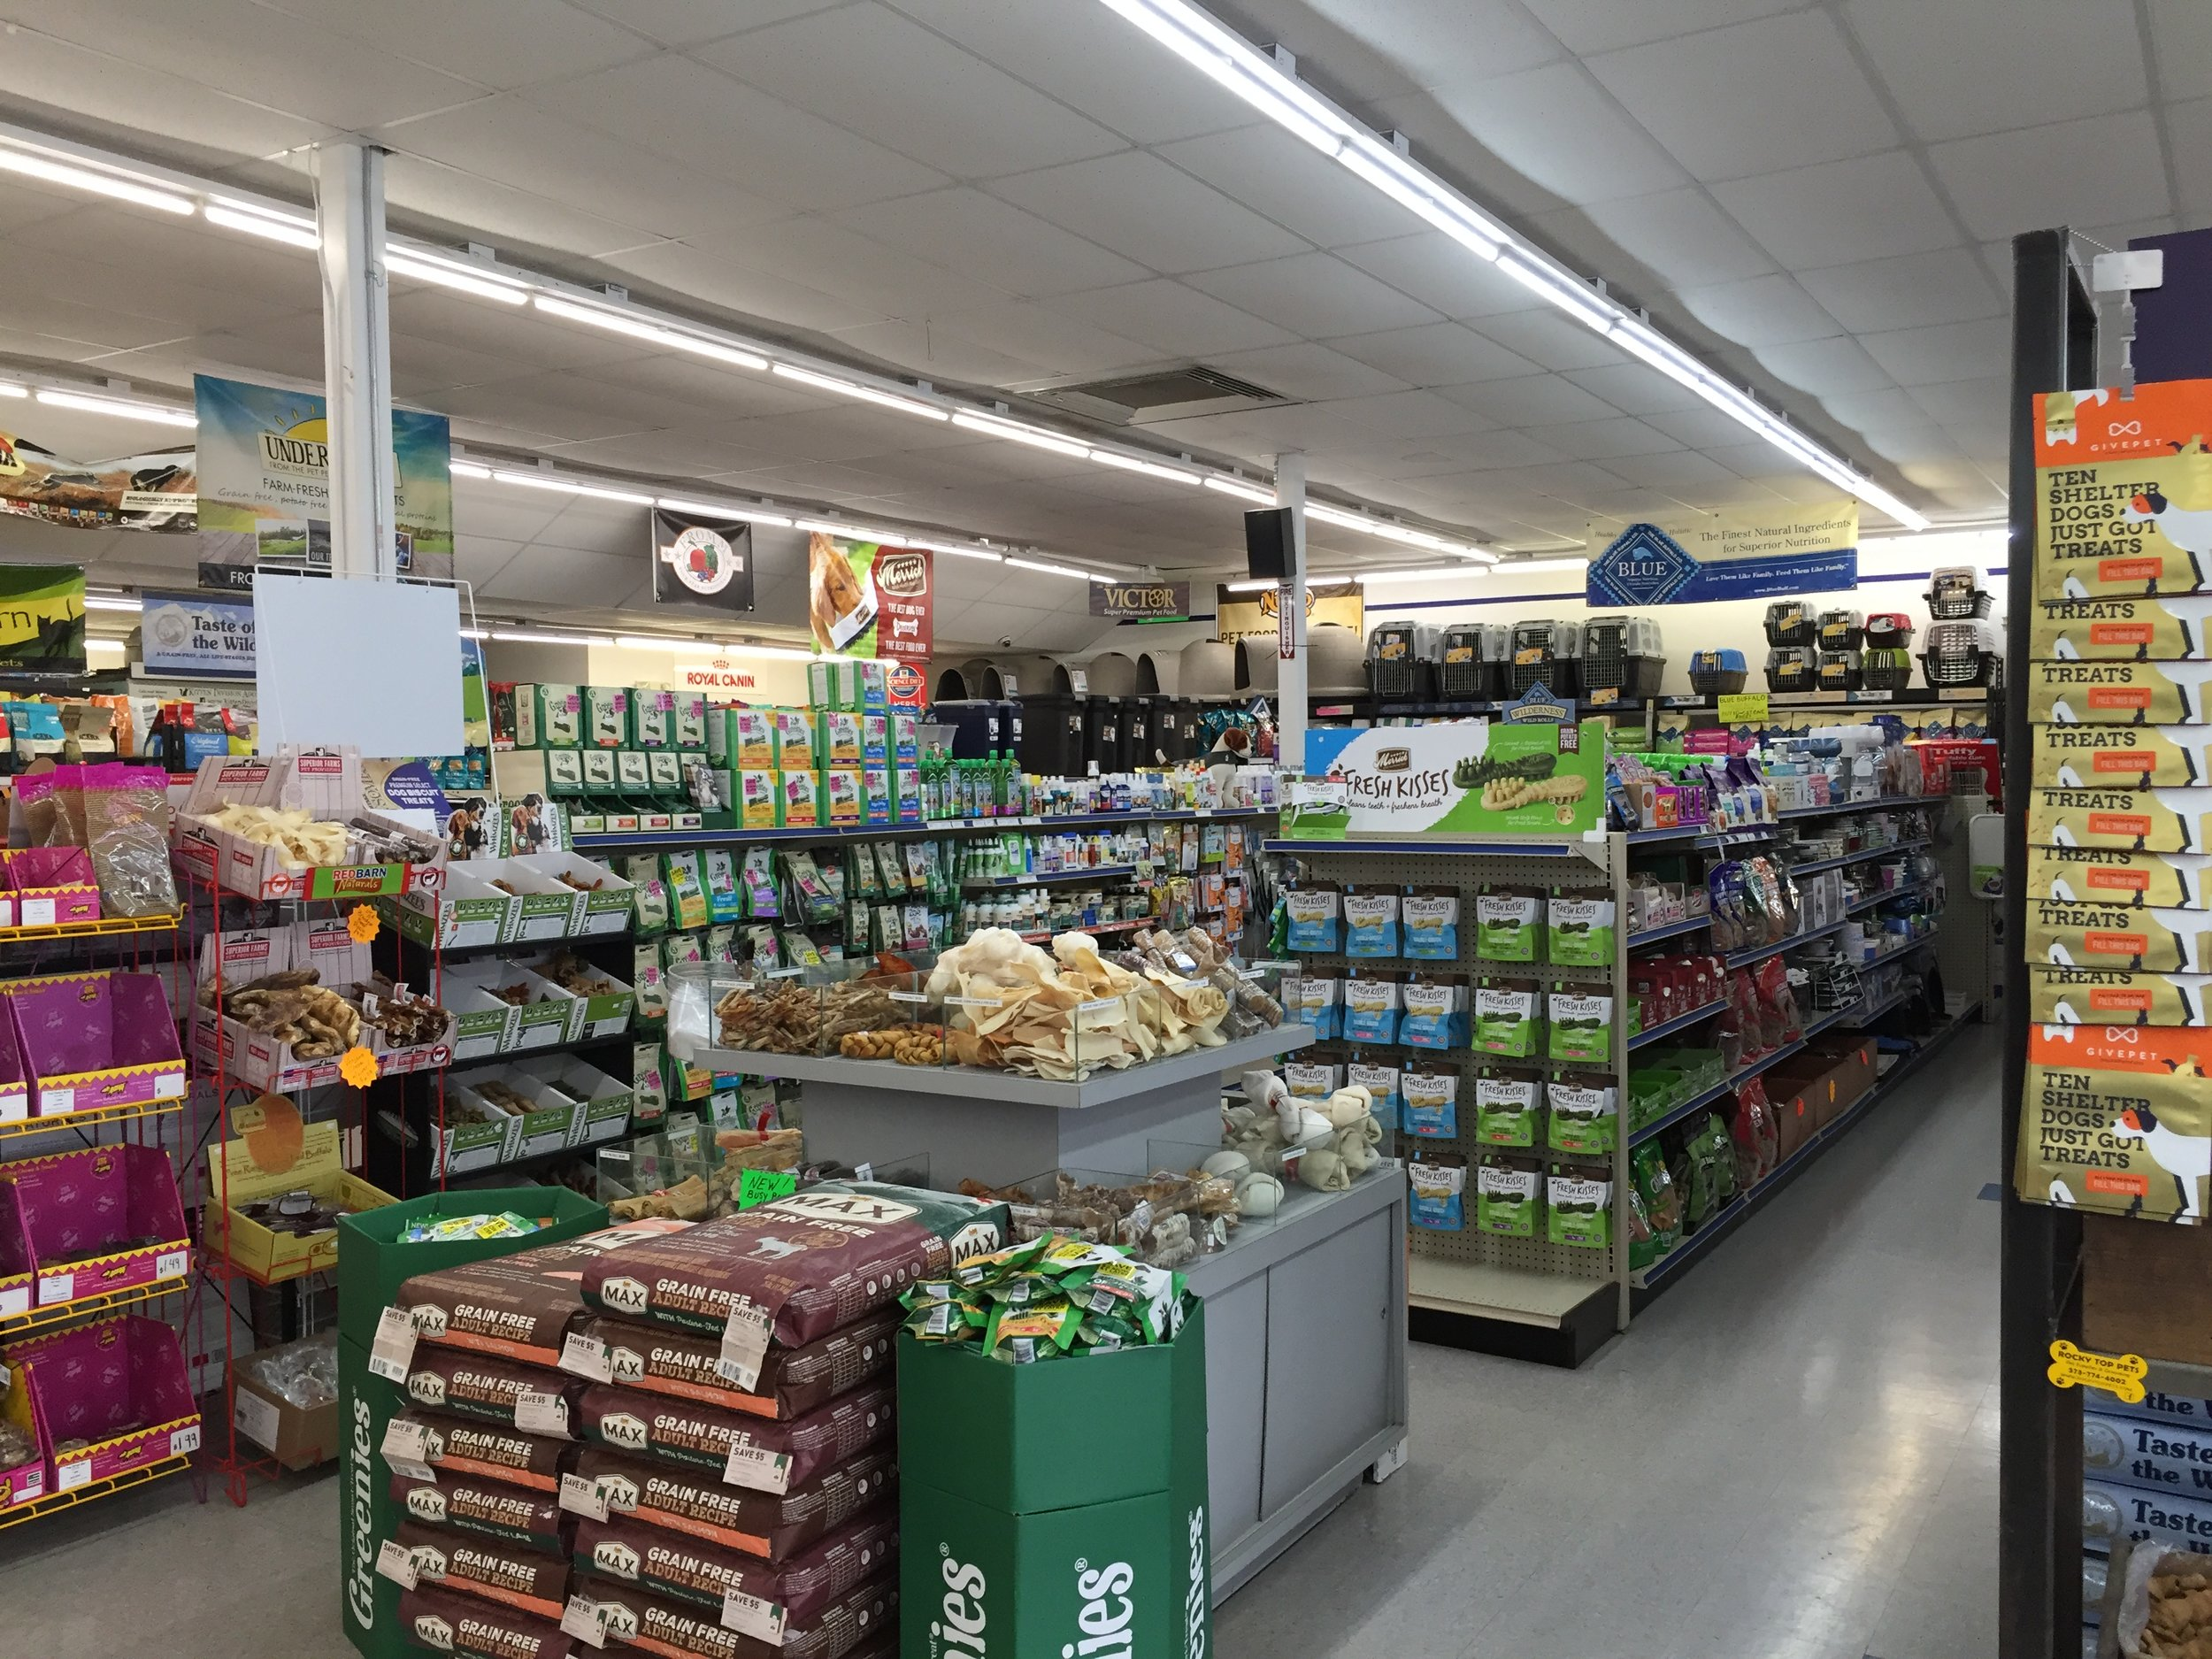 Your #1 Local Pet Superstore - Our huge store offers the area's largest selection of pet food and supplies, professional grooming services, kitten adoptions, small animals, fish and much more. Our services come with the promise of quality, care, and dedication.